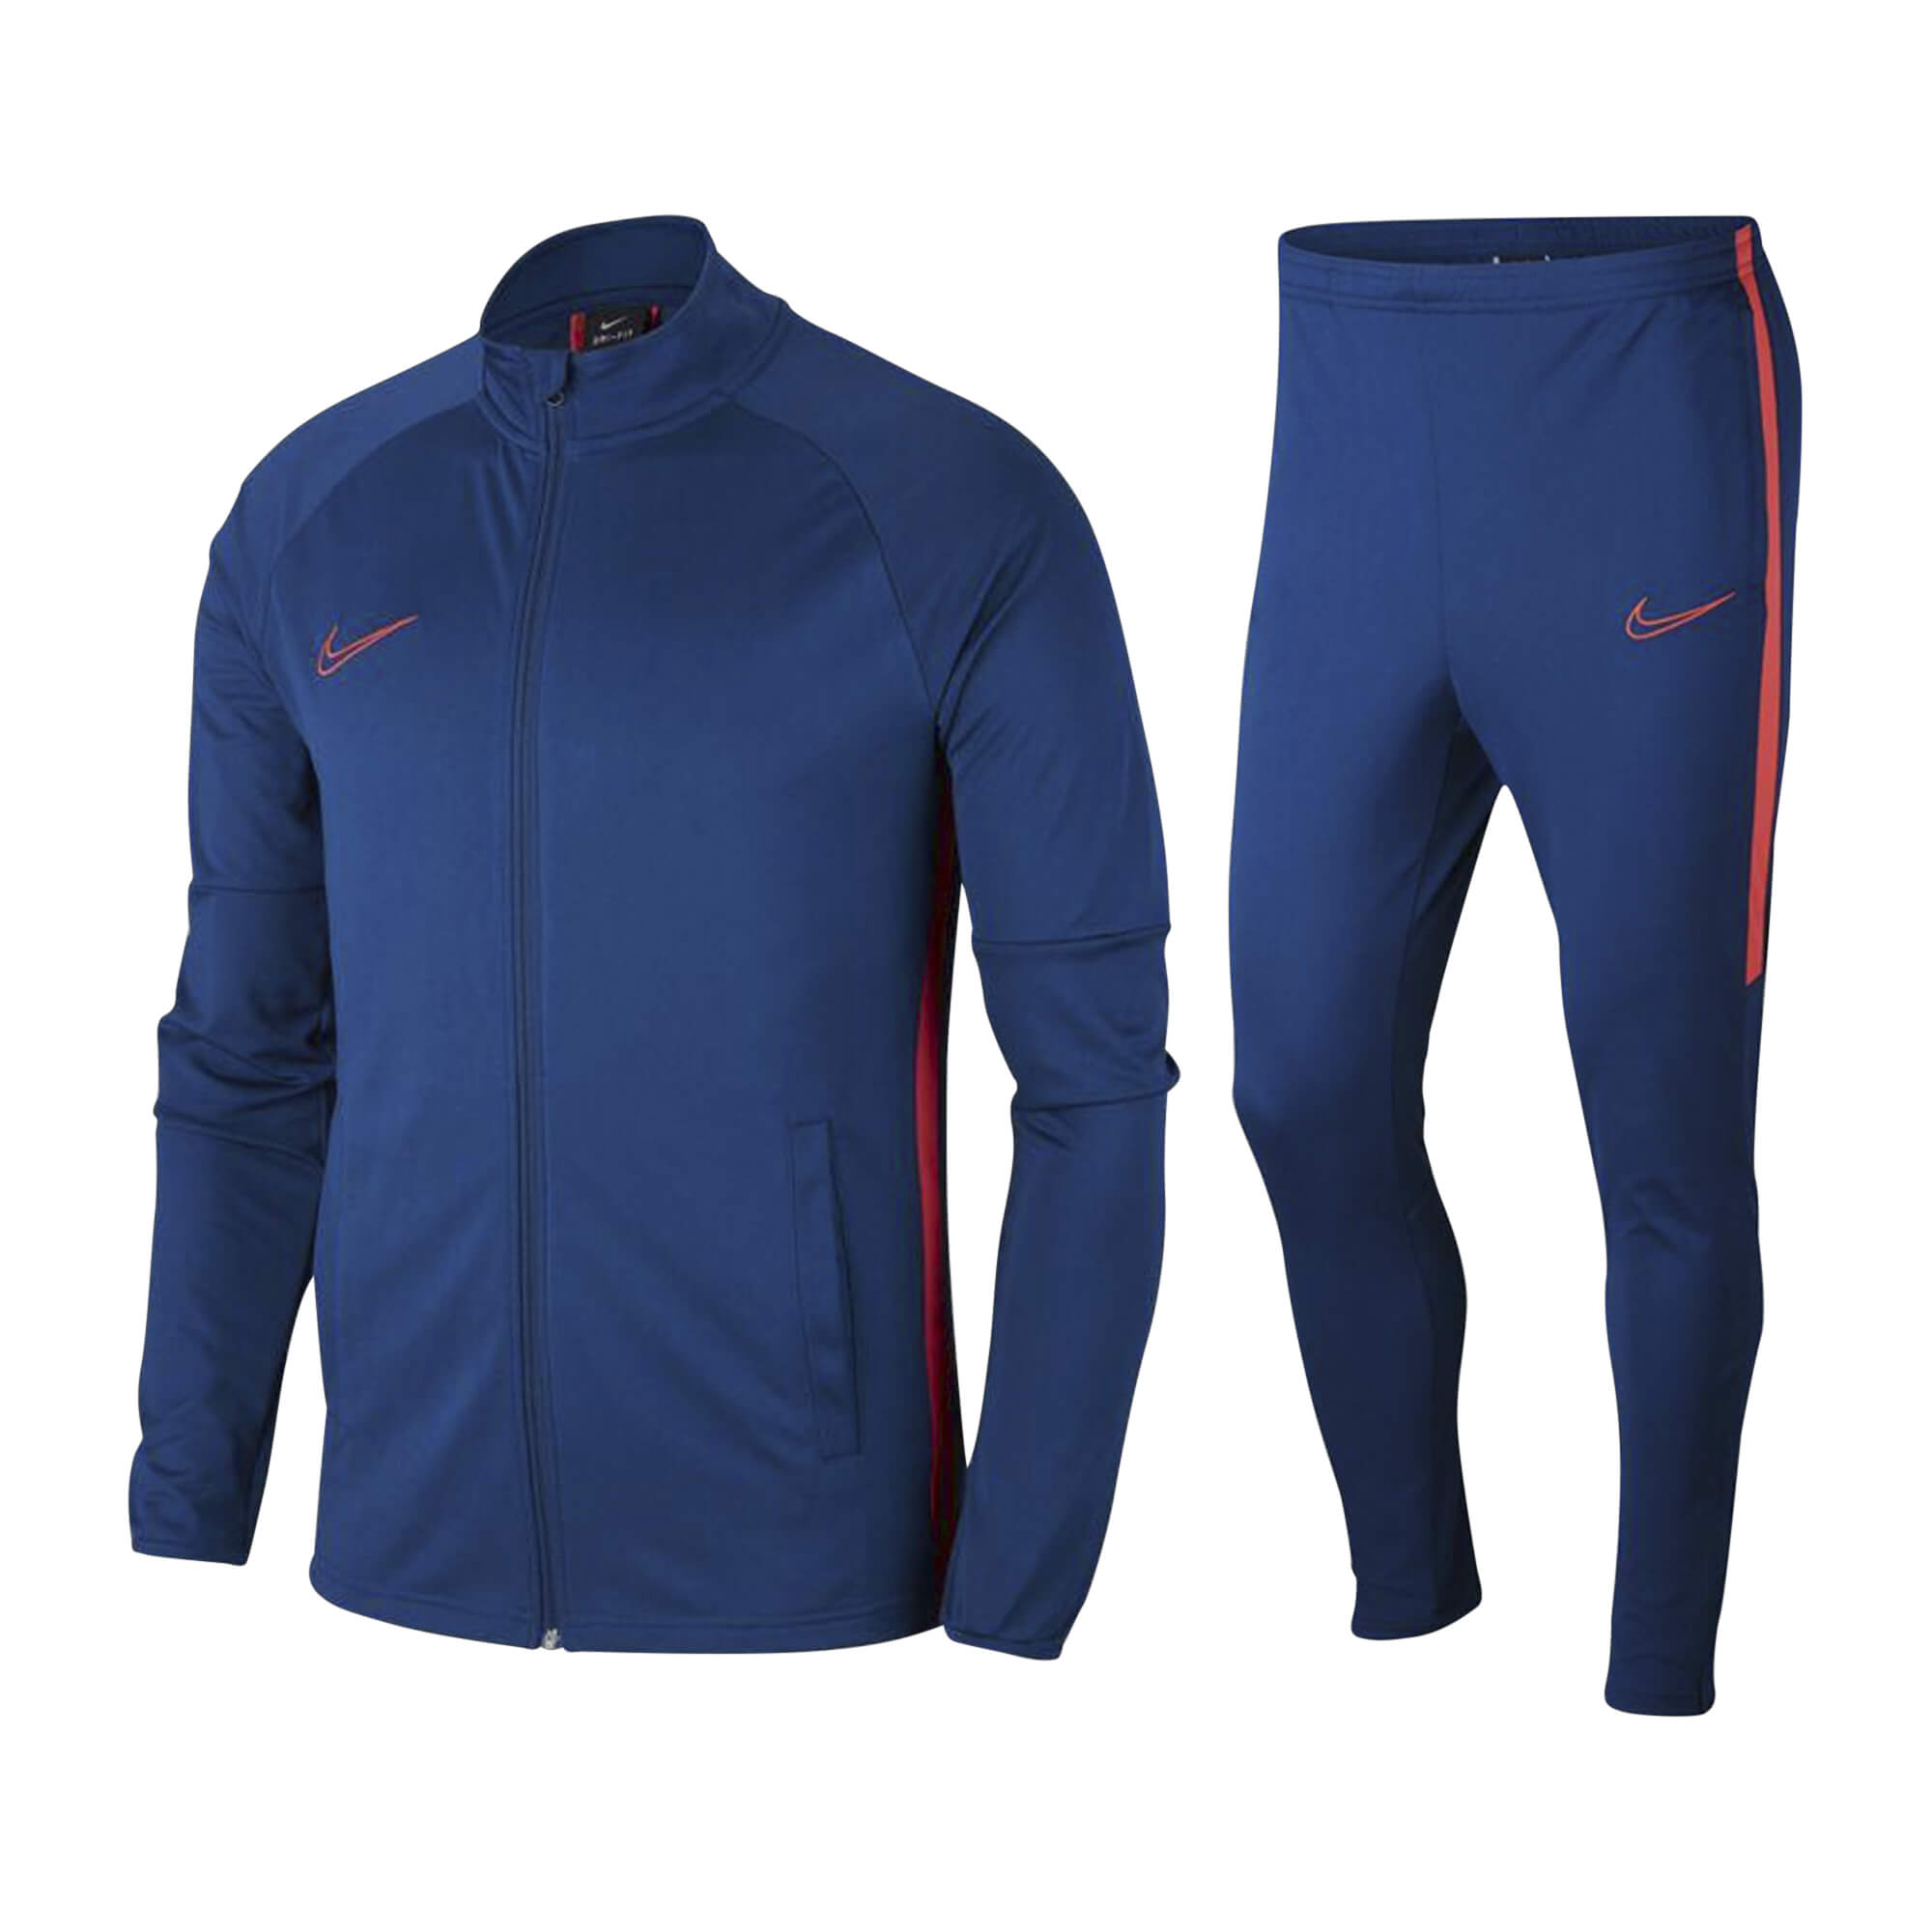 Academy Track Suit imagine